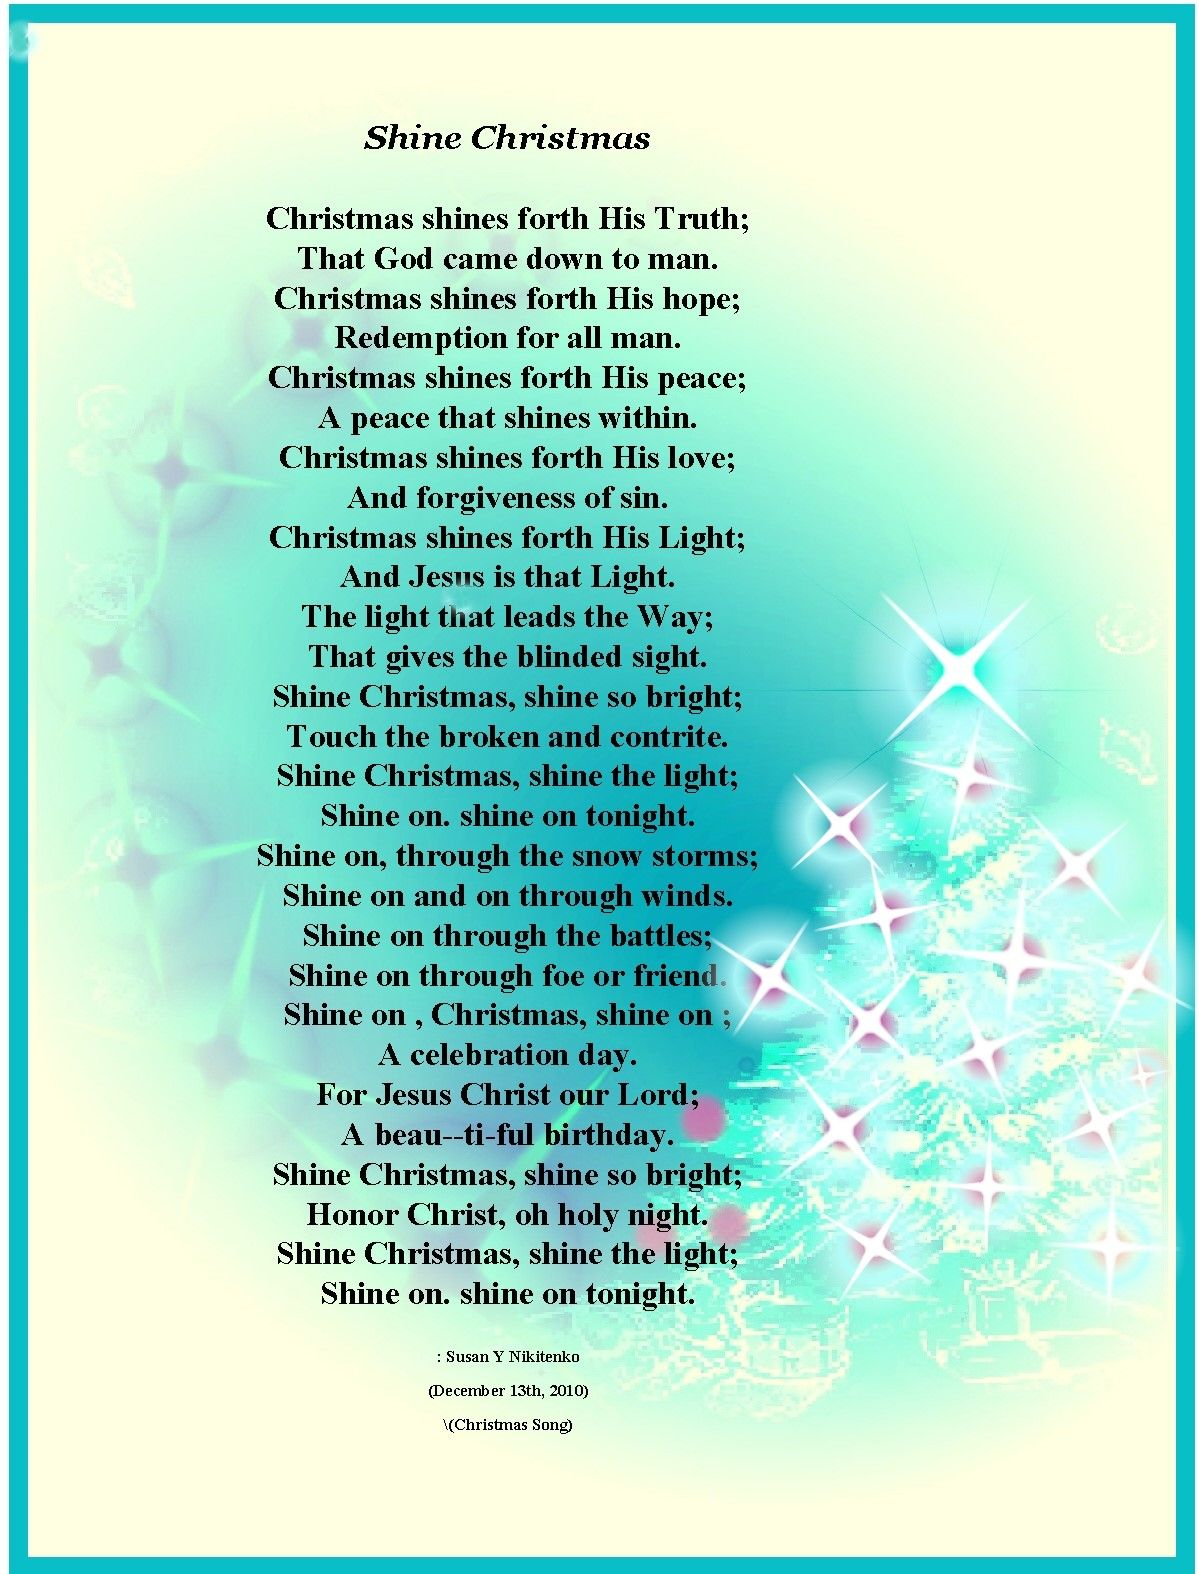 Christmas poems for church programs - Christian Christmas Poems About Angels Christian Images In My Treasure Box Christmas Poem Posters